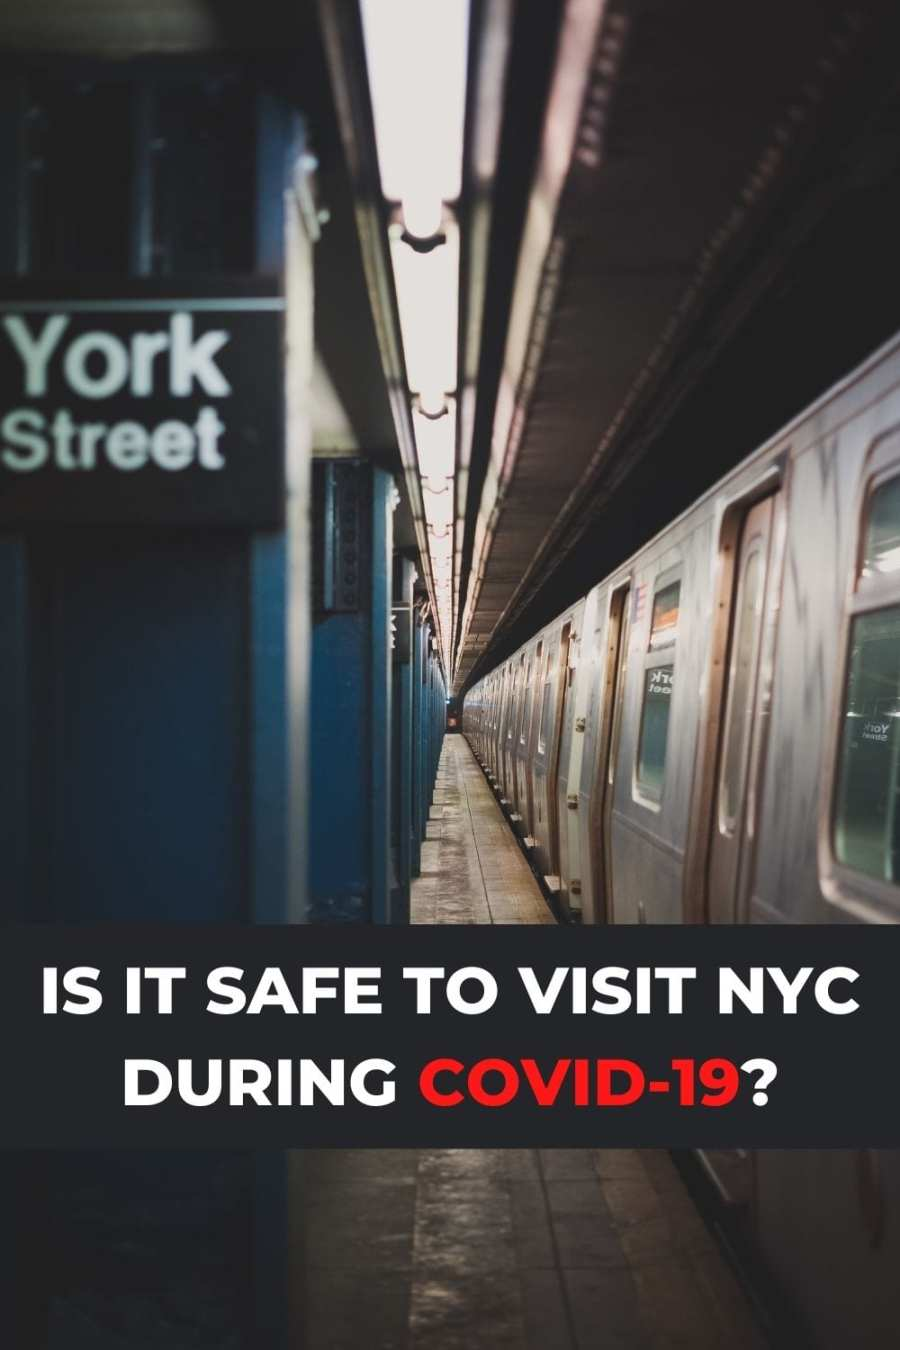 New York safe to visit - COVID-19